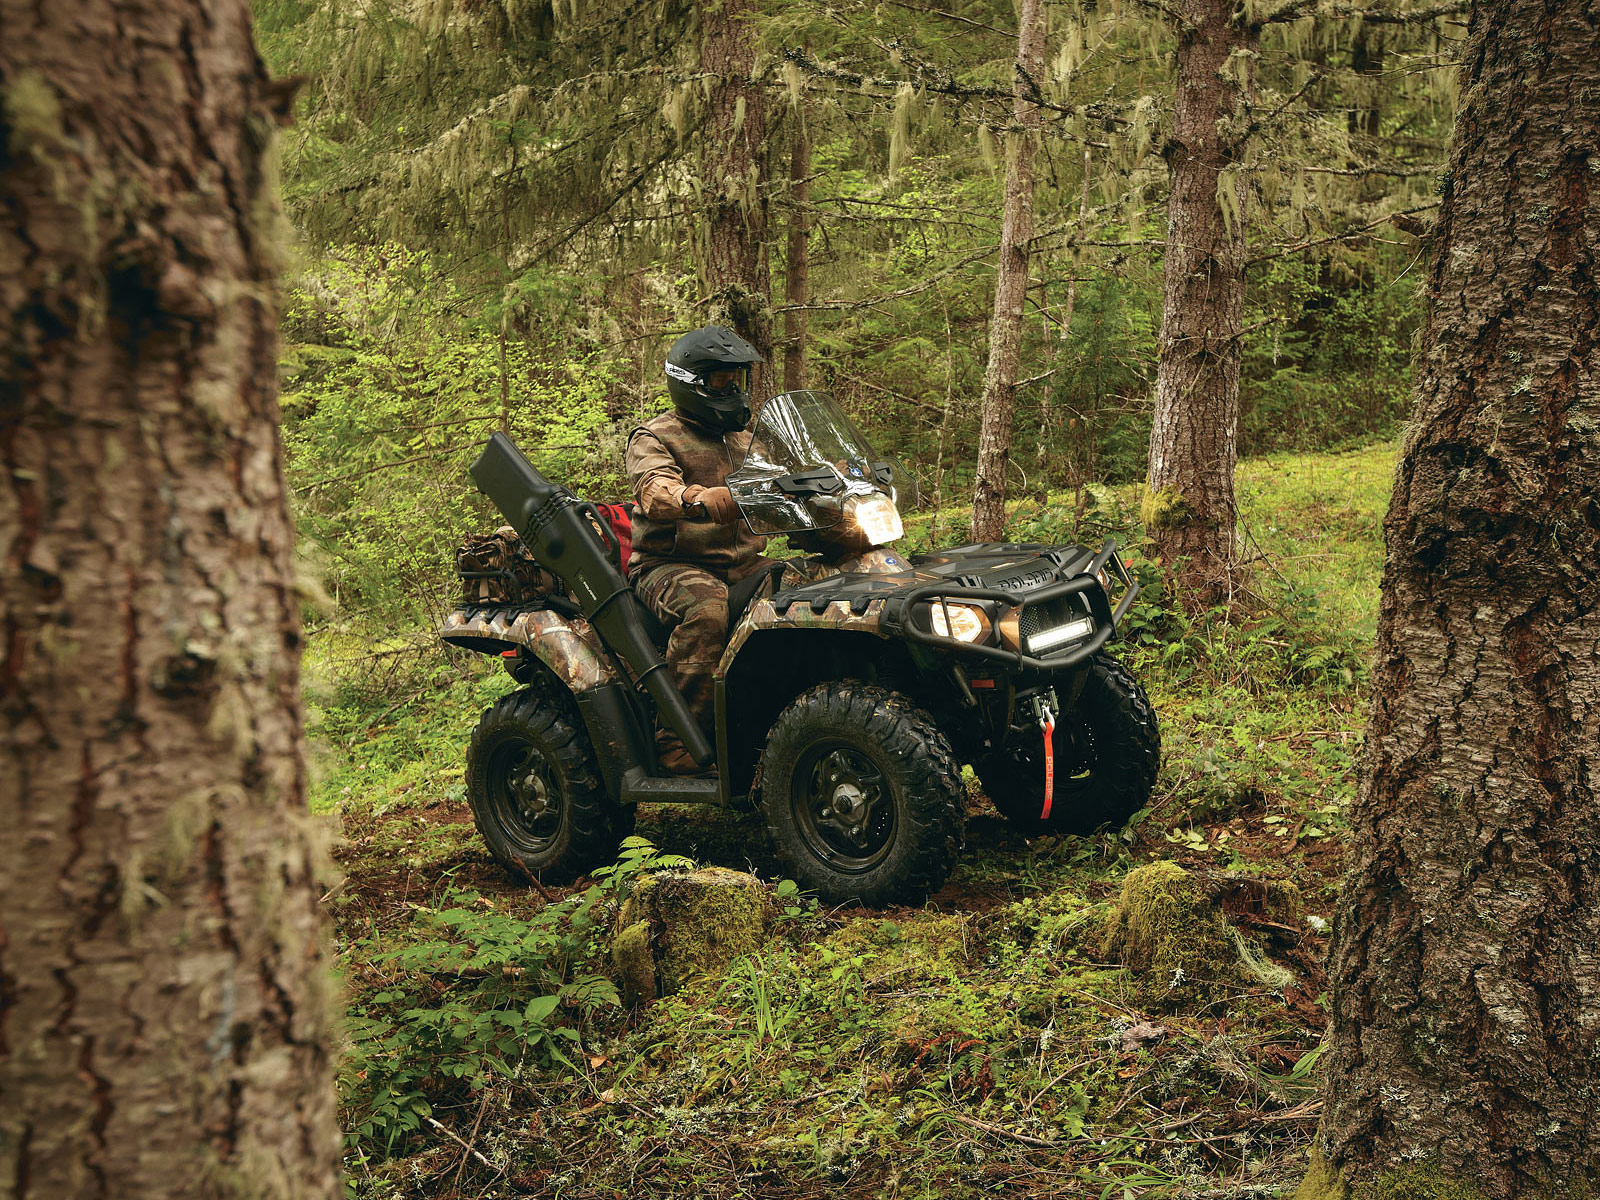 2012 POLARIS Sportsman XP850HO ATV pictures specifications 1600x1200